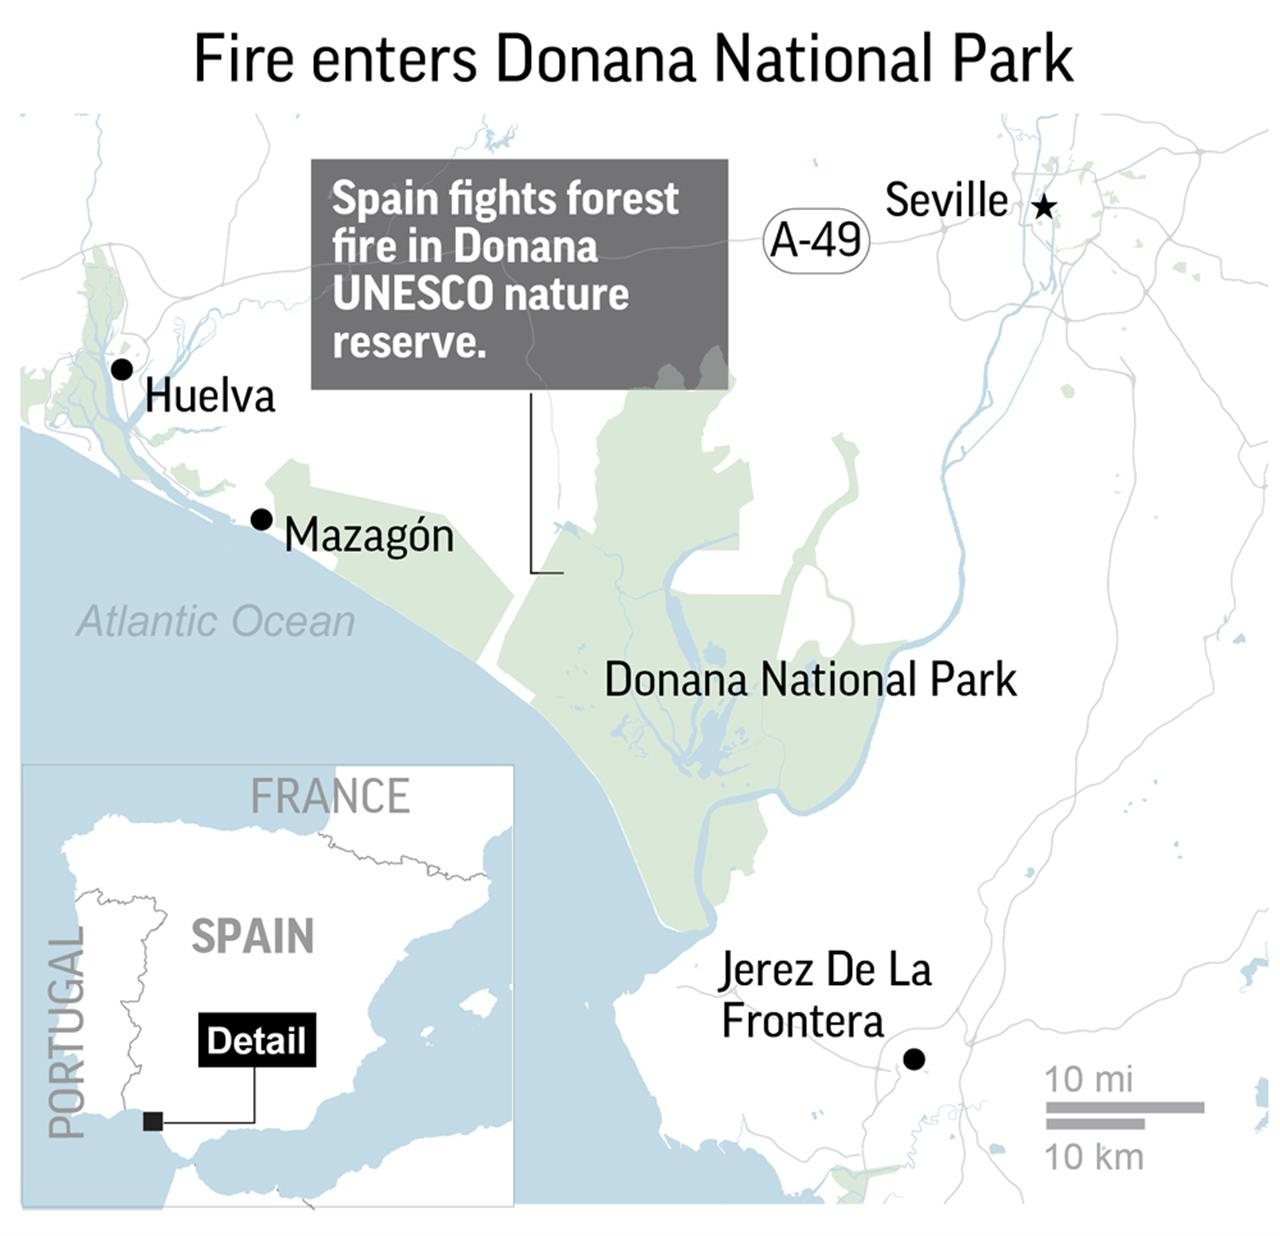 Map Of Fires In Spain 2017.Forest Fire In Spain Threatens Renowned National Park Am 920 The